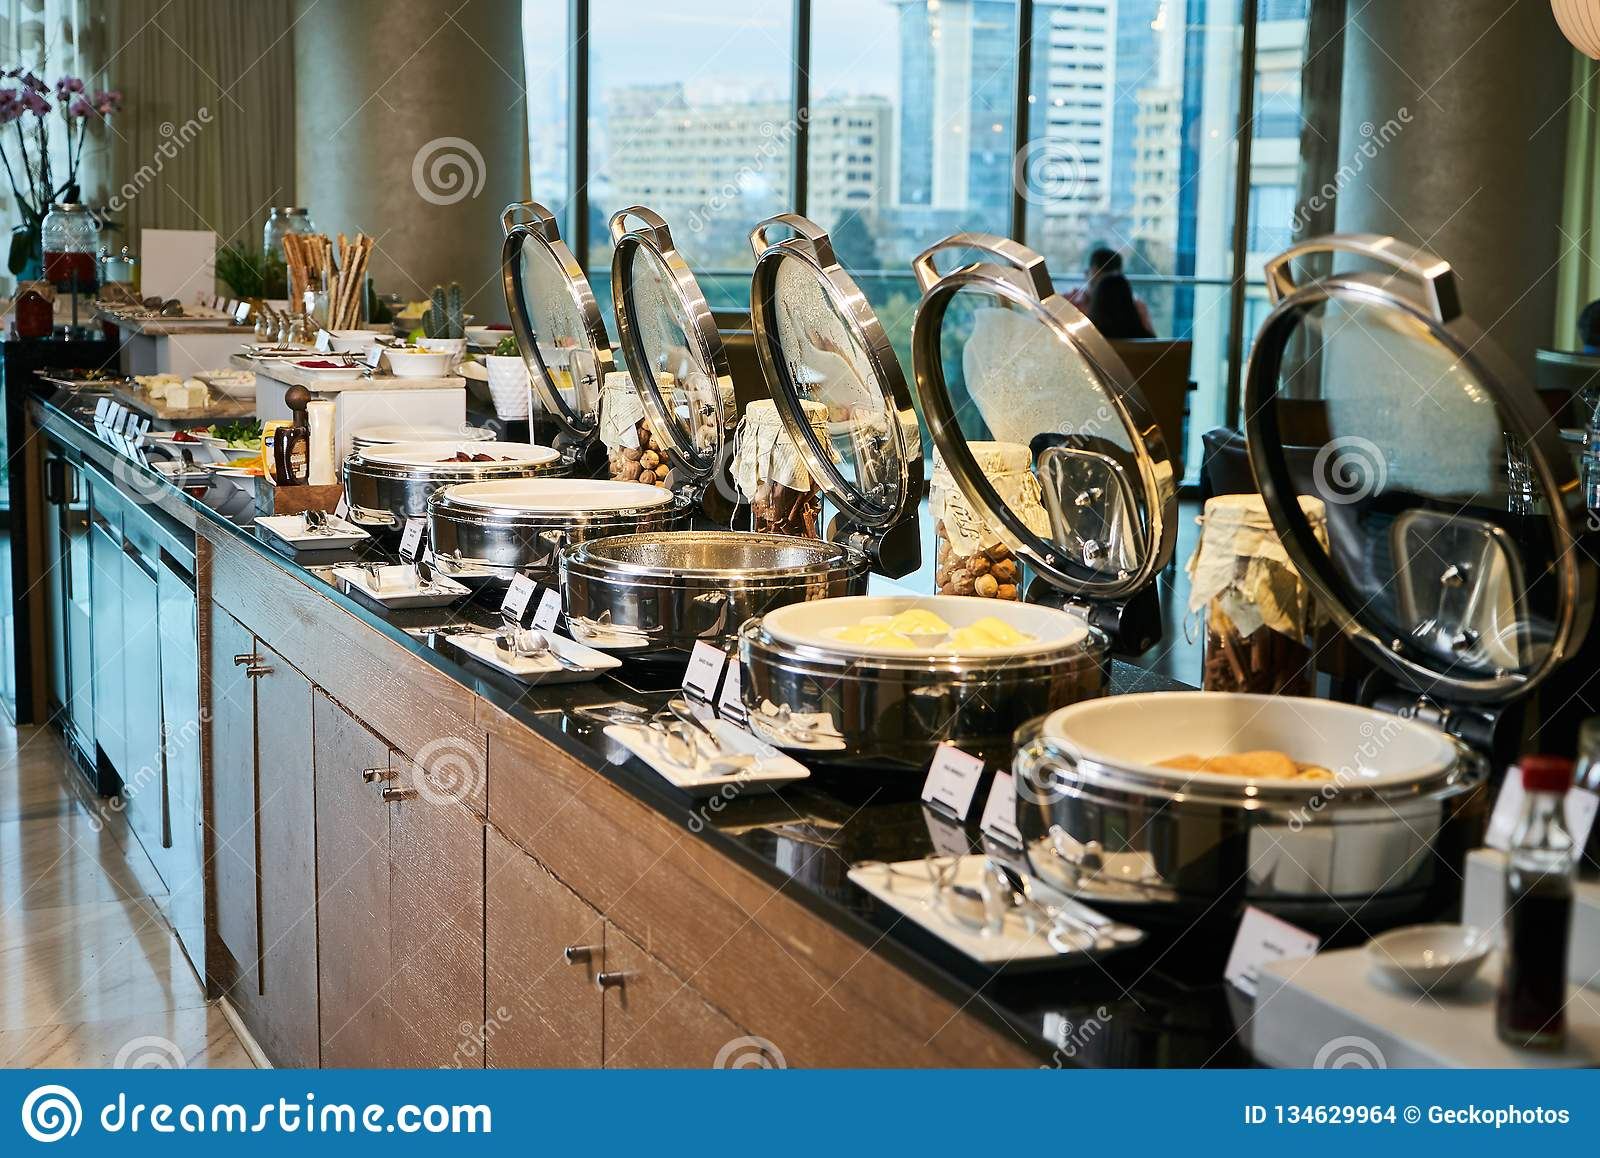 Catering buffet food in hotel restaurant, close-up. Celebration